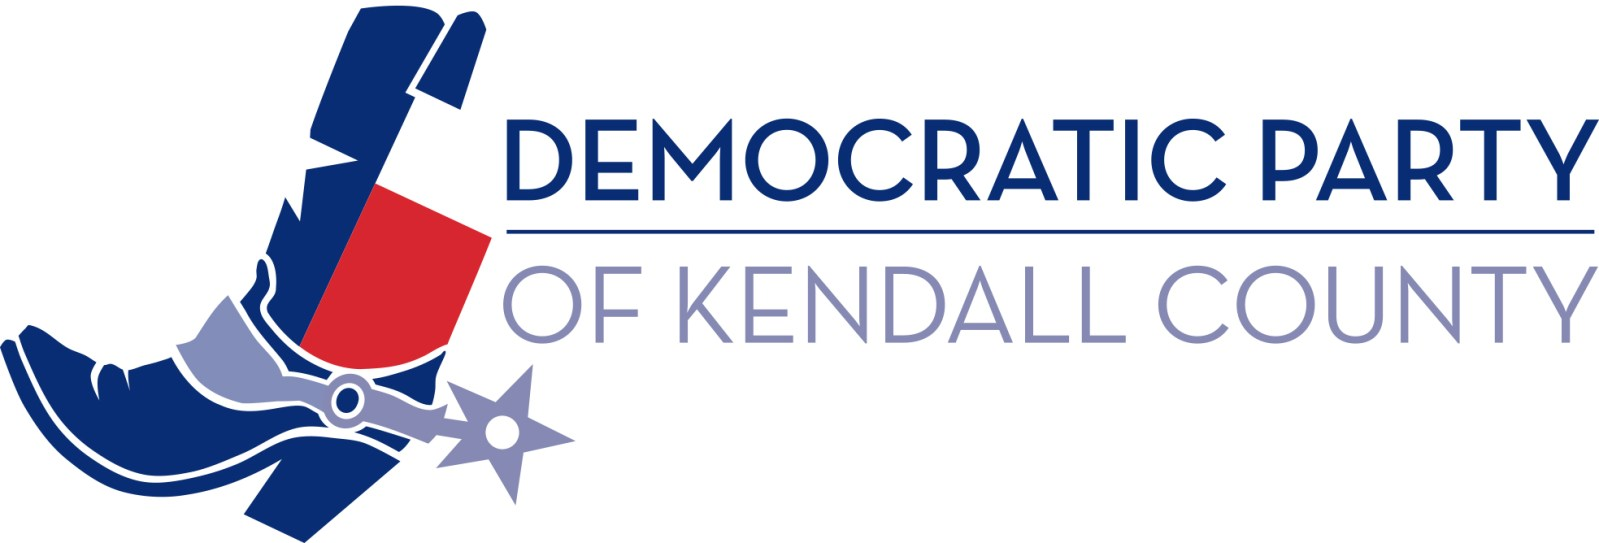 Democratic Party of Kendall County